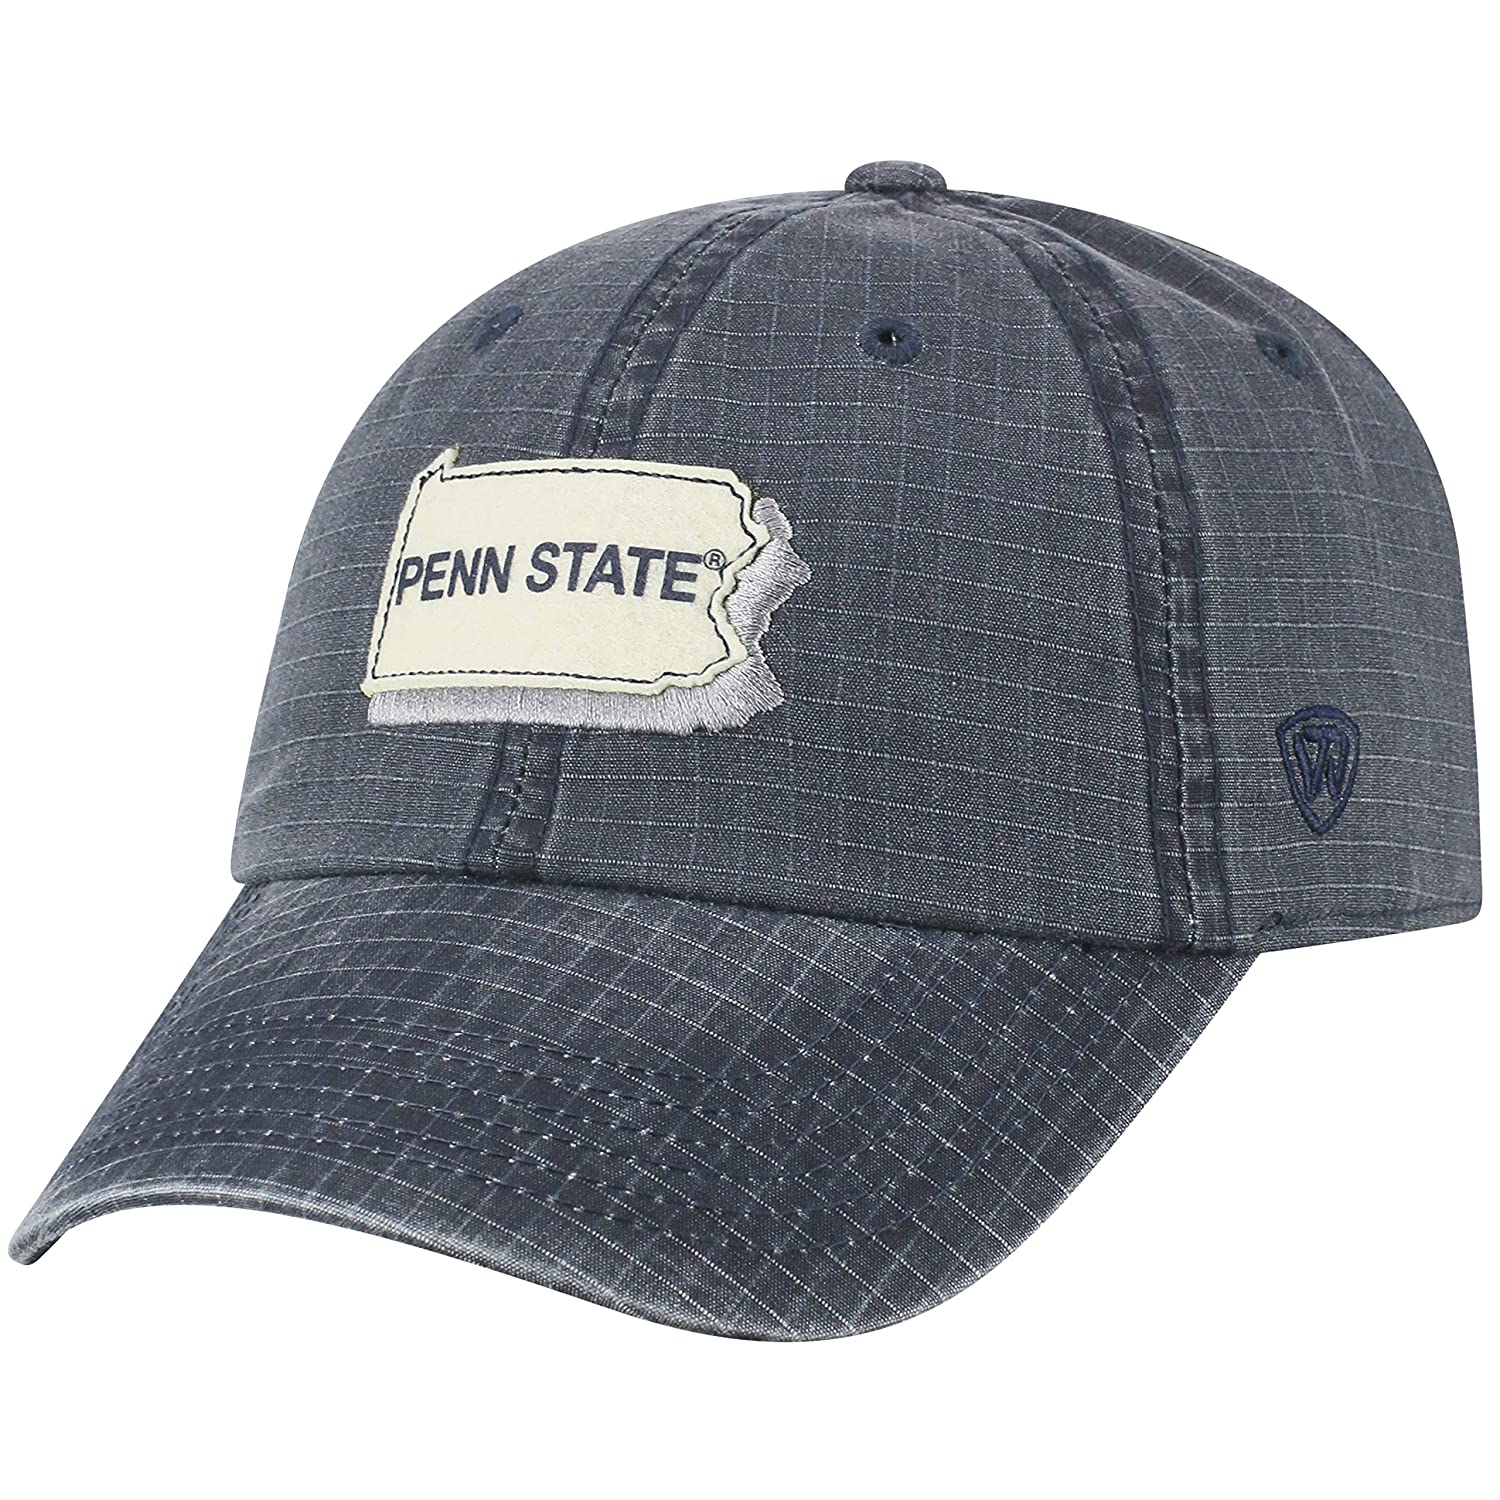 3b4d078a9c2 Amazon.com   Top of the World Penn State Nittany Lions Official NCAA  Adjustable Stateline Cotton Hat Cap 457109   Sports   Outdoors